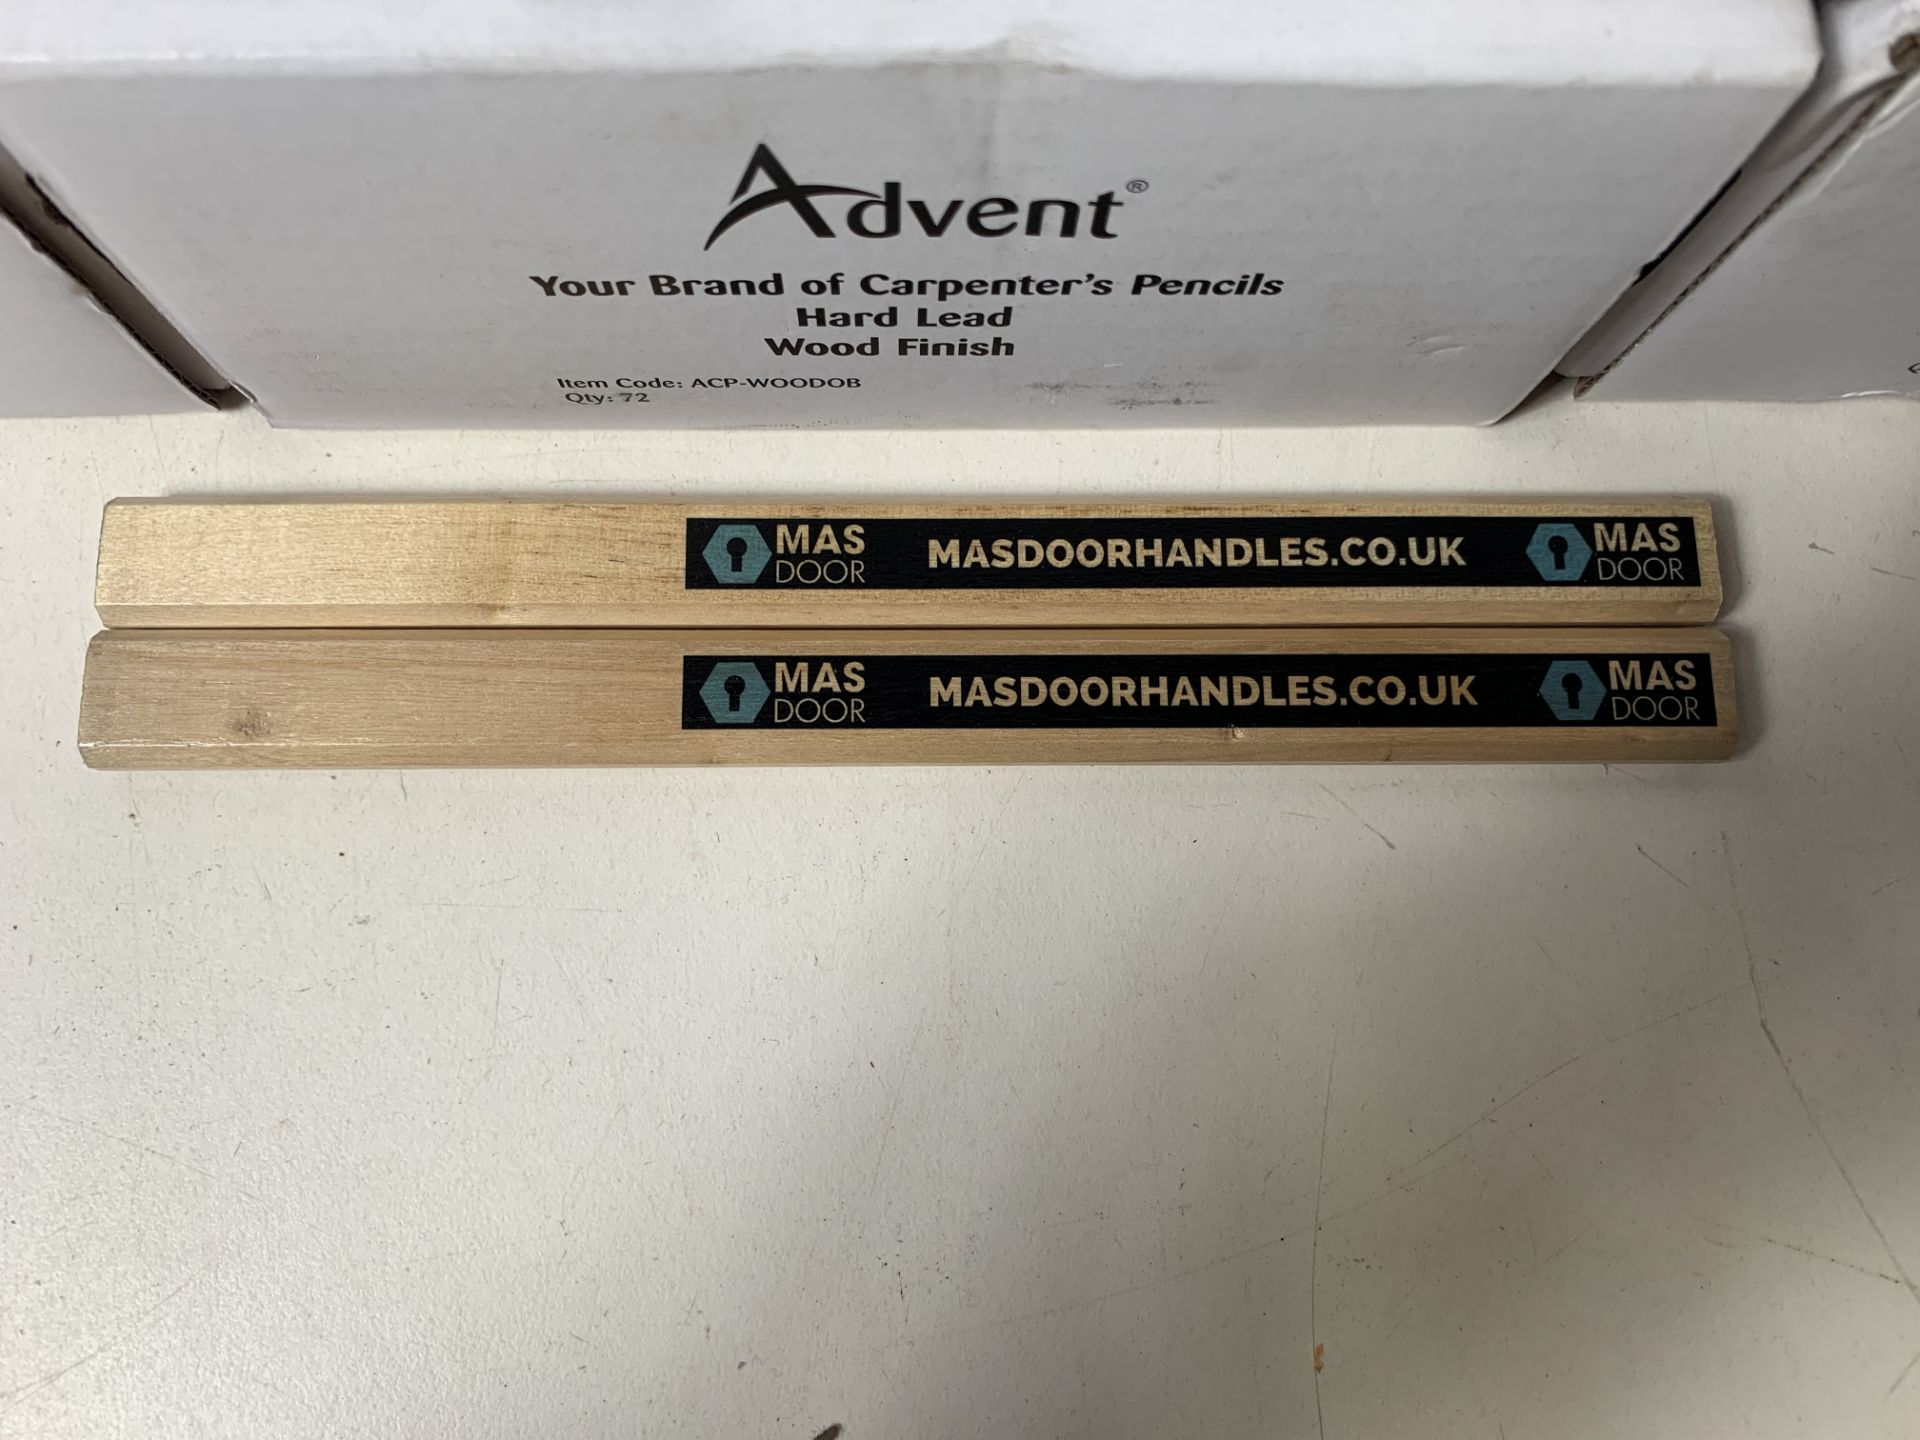 5 x Boxes of 72 Advent 'Mas Door' Carpenter's Pencils - Image 3 of 3